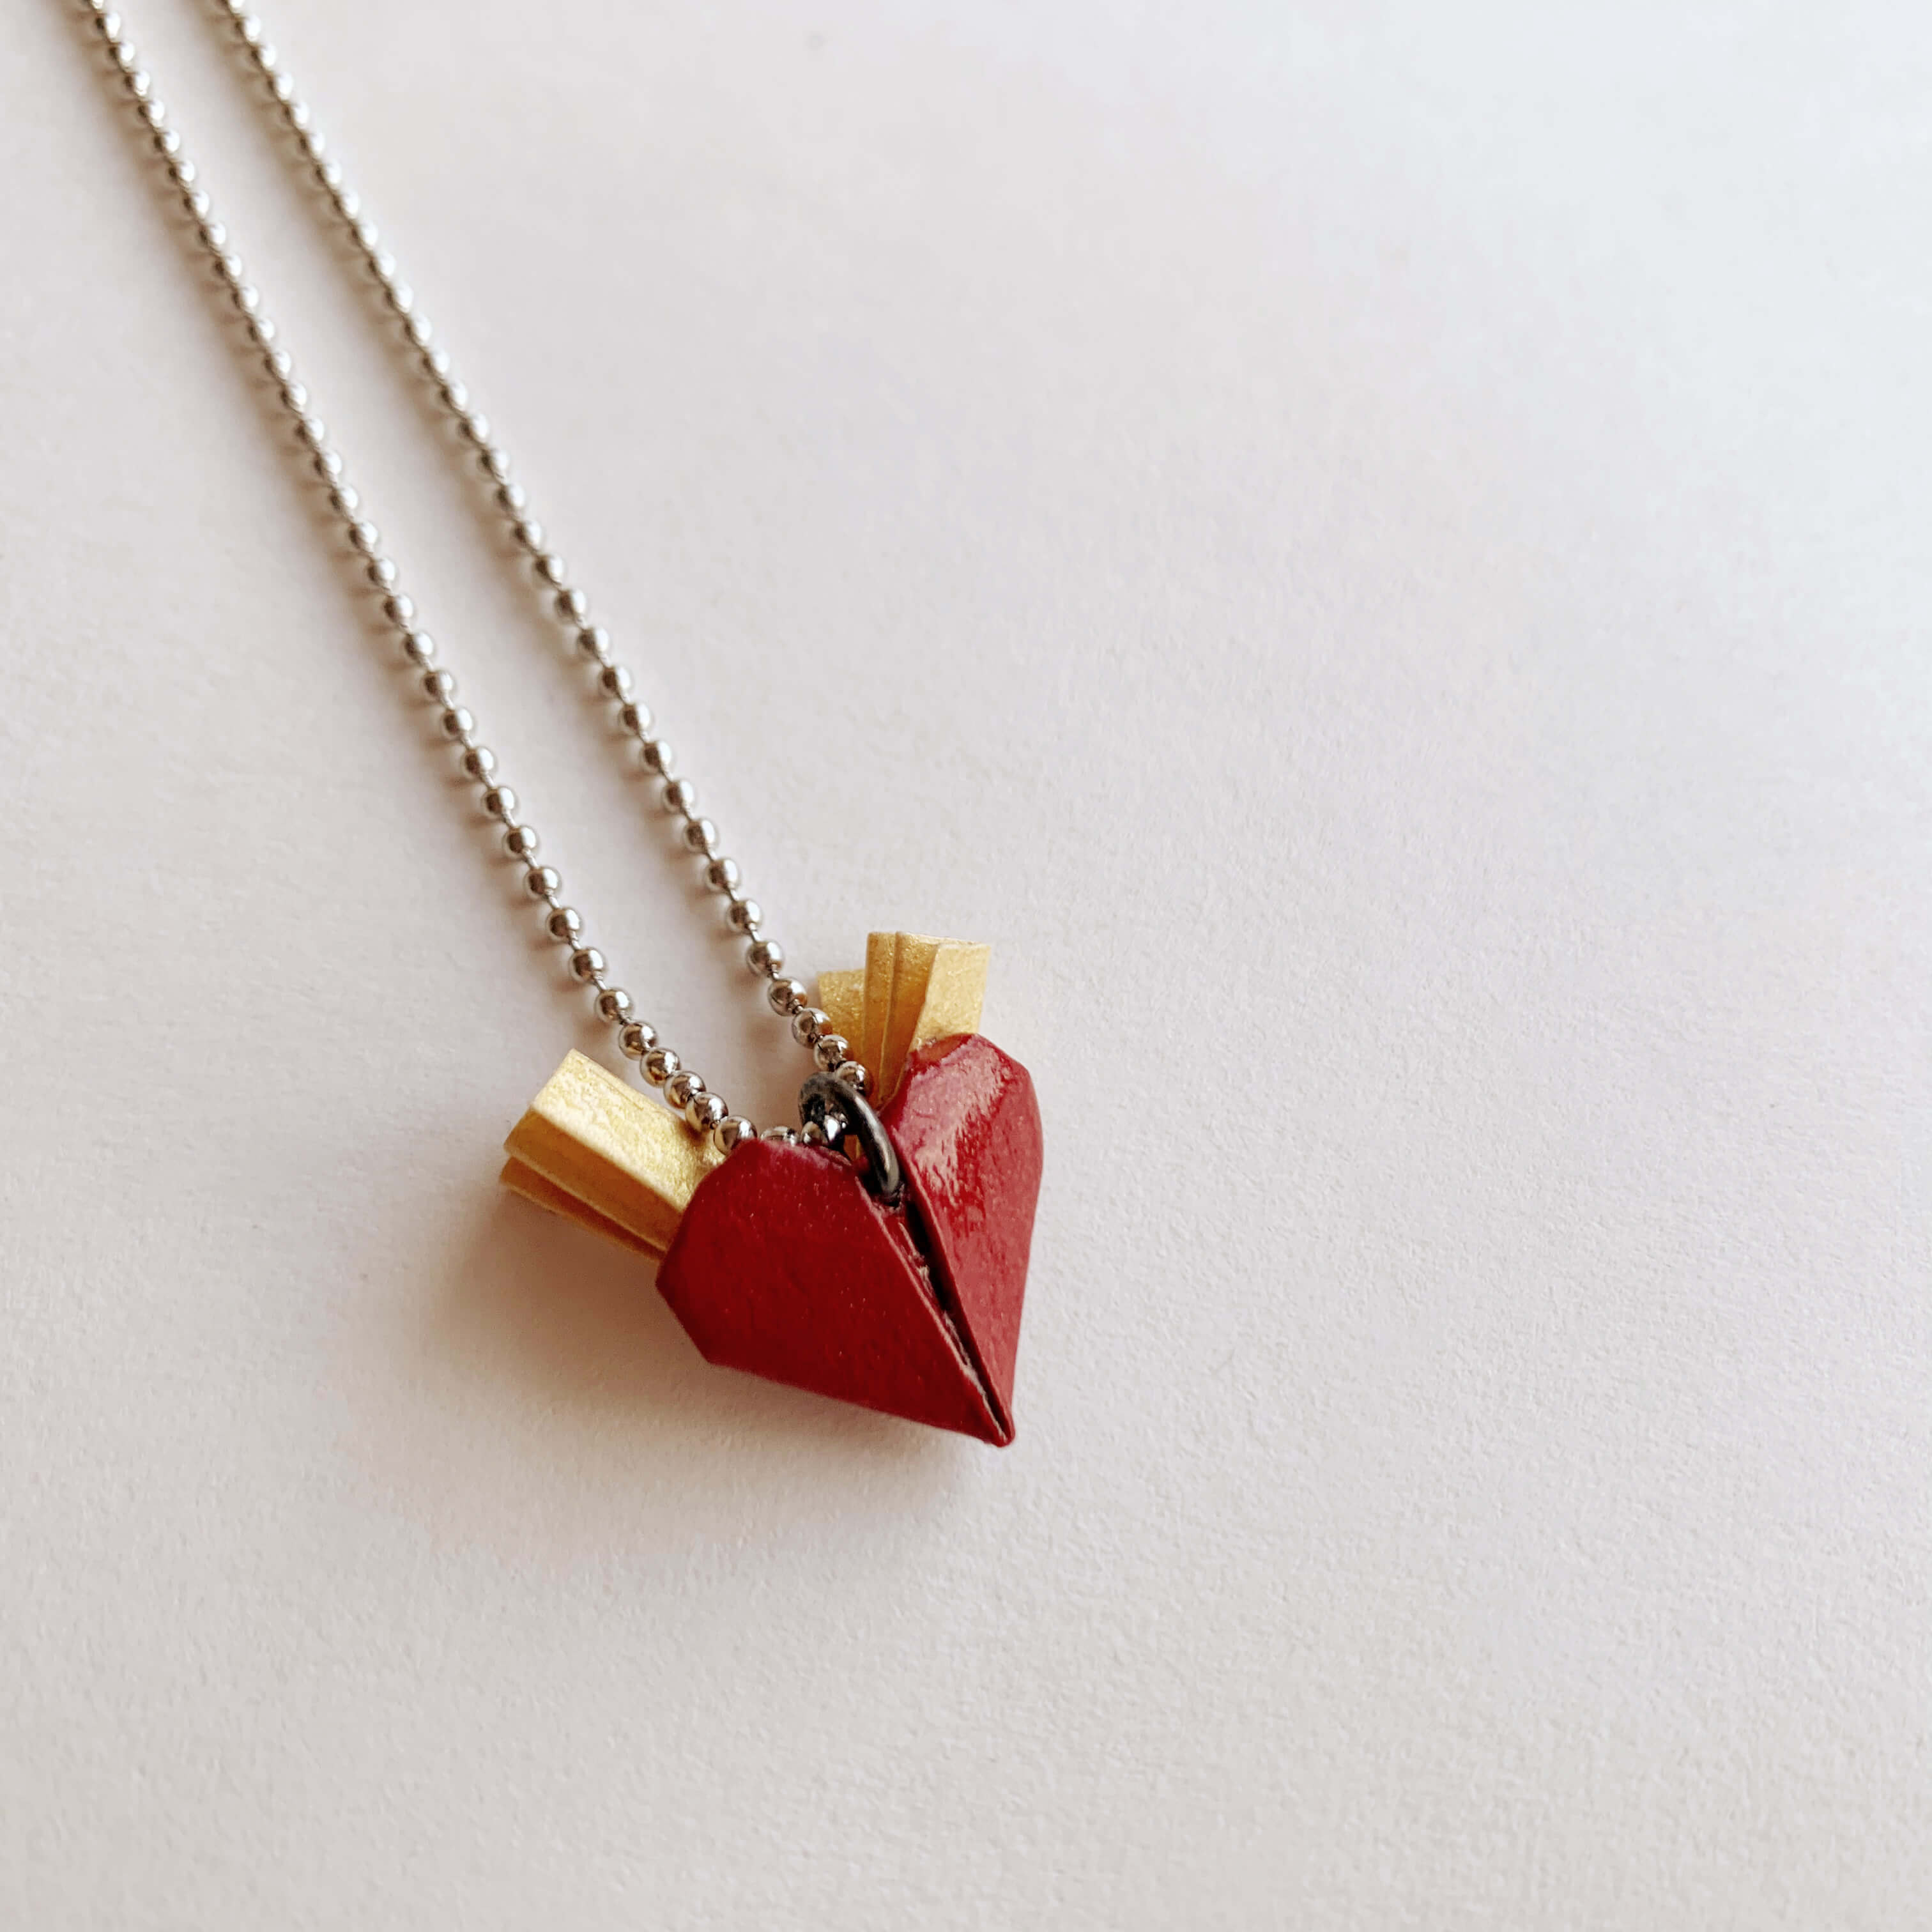 Origami valentines winged heart necklace